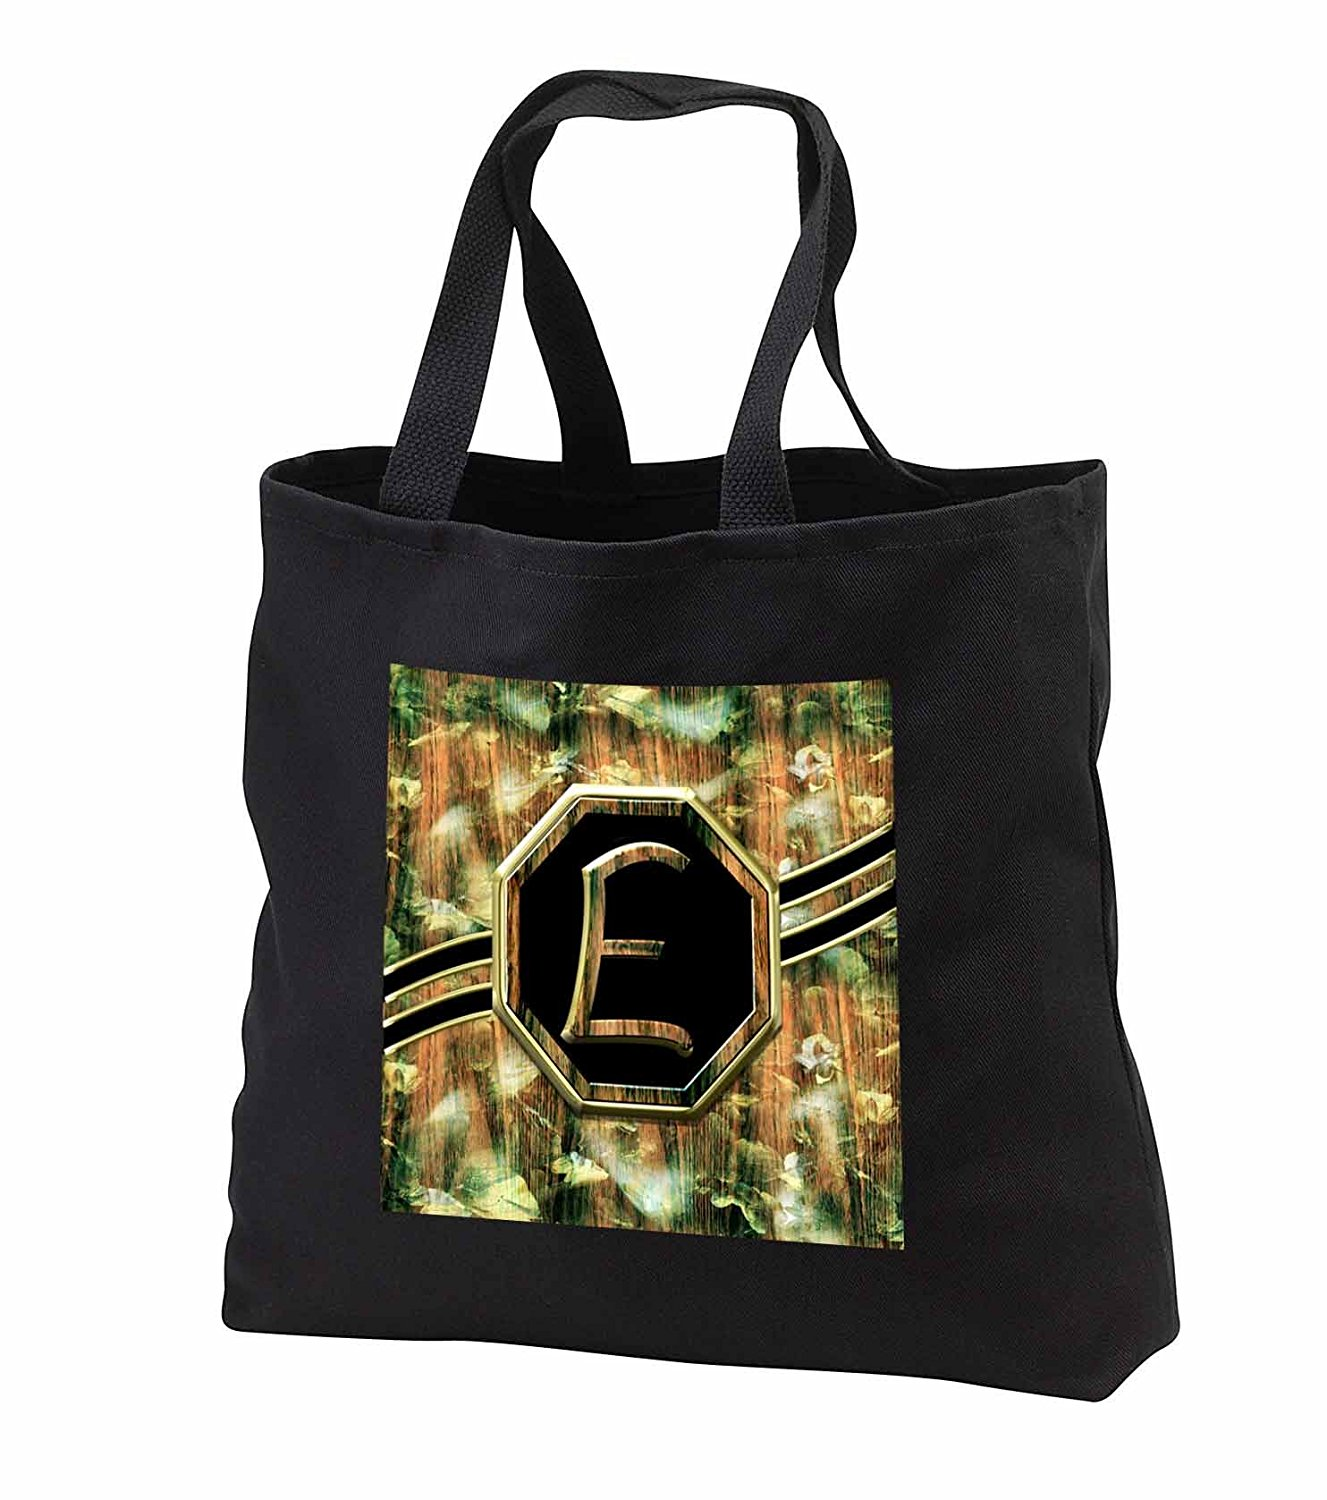 tb_242334 Charlyn Woodruff - CW Designs Monogram Camouflage - Elegant Camouflage Monogram Letter E Faux Gold Wood Grain Image - Tote Bags